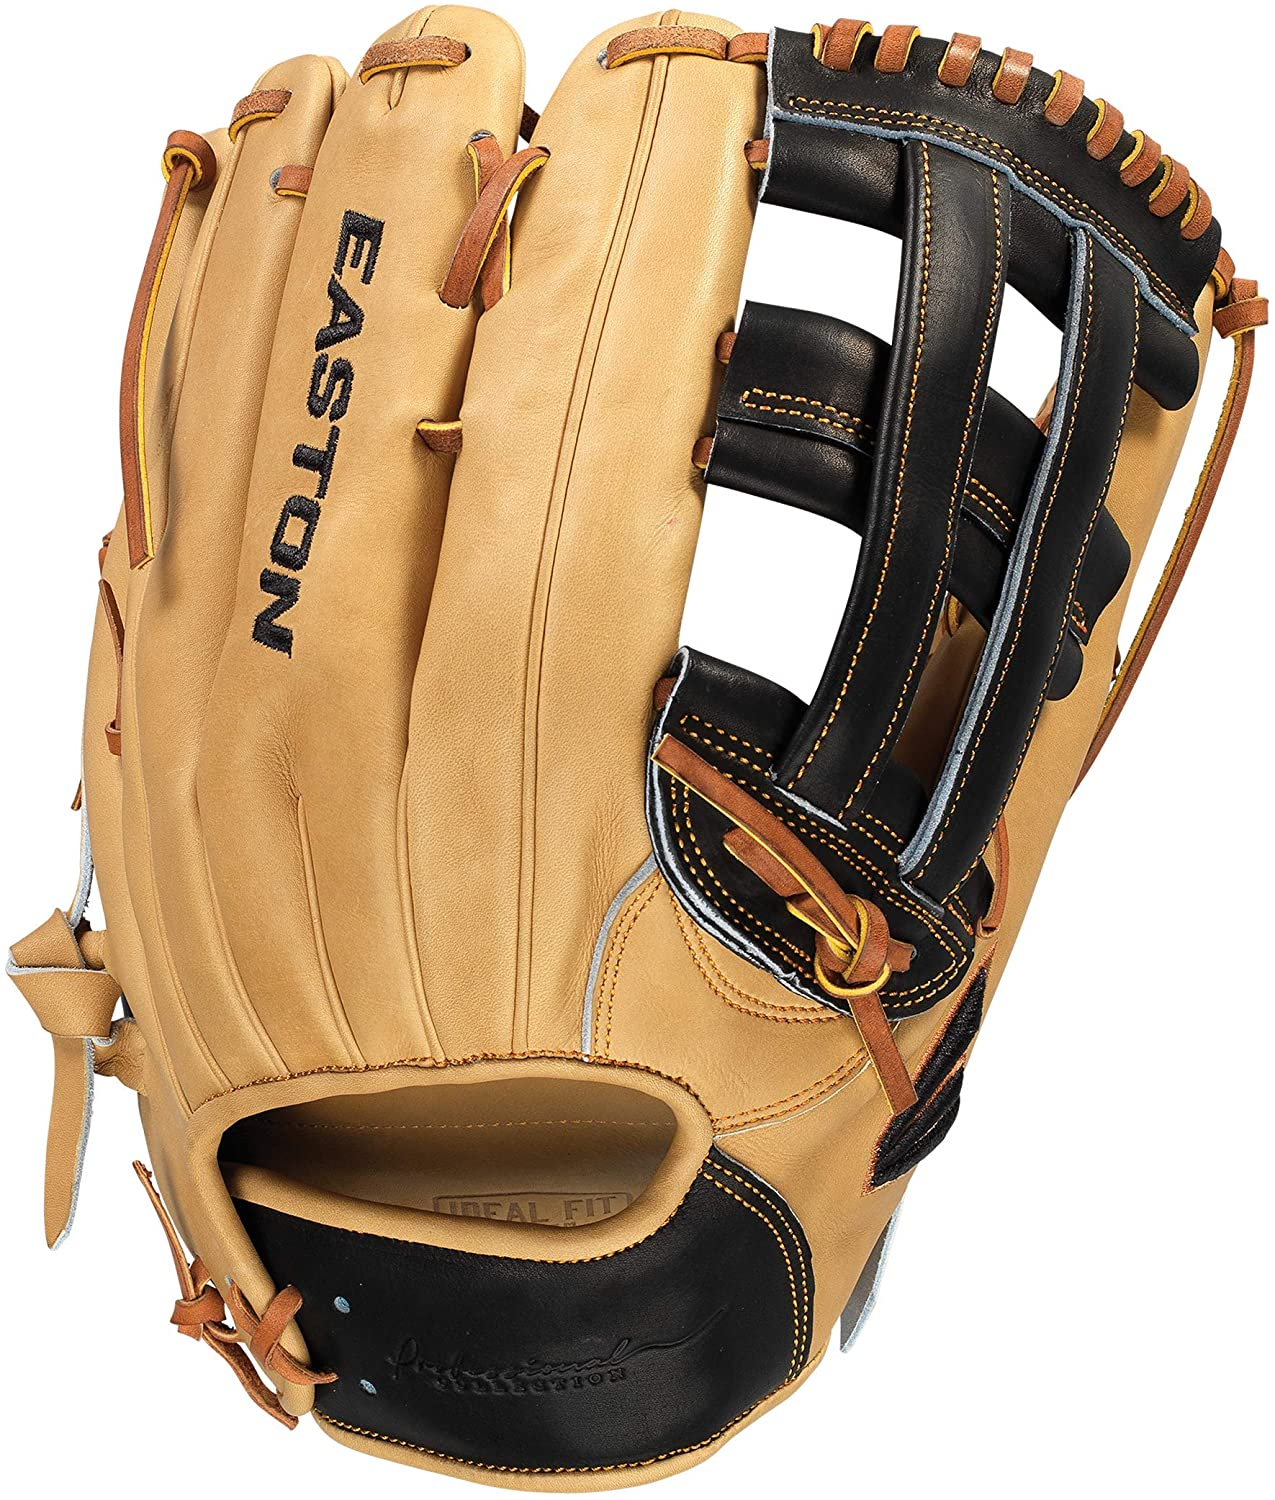 easton-pro-collection-kip-baseball-glove-ck-l73-right-hand-throw PCK-L73-RightHandThrow Easton  Handcrafted with lightweight tight-grained premium Japanese Reserve Kip leather KIP Including